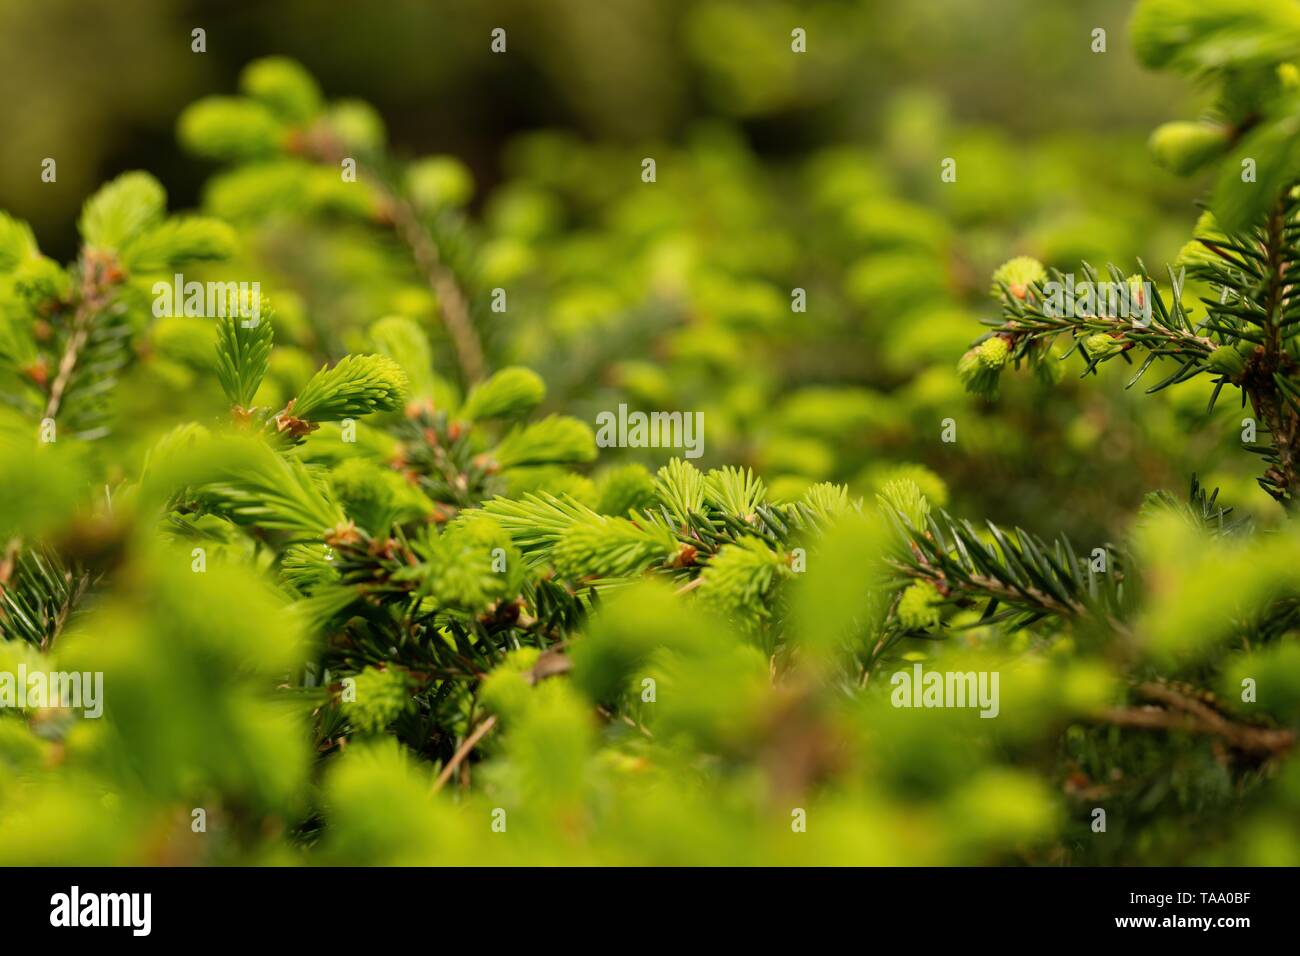 Background with young green conifer or larch tree branches in springtime - Stock Image